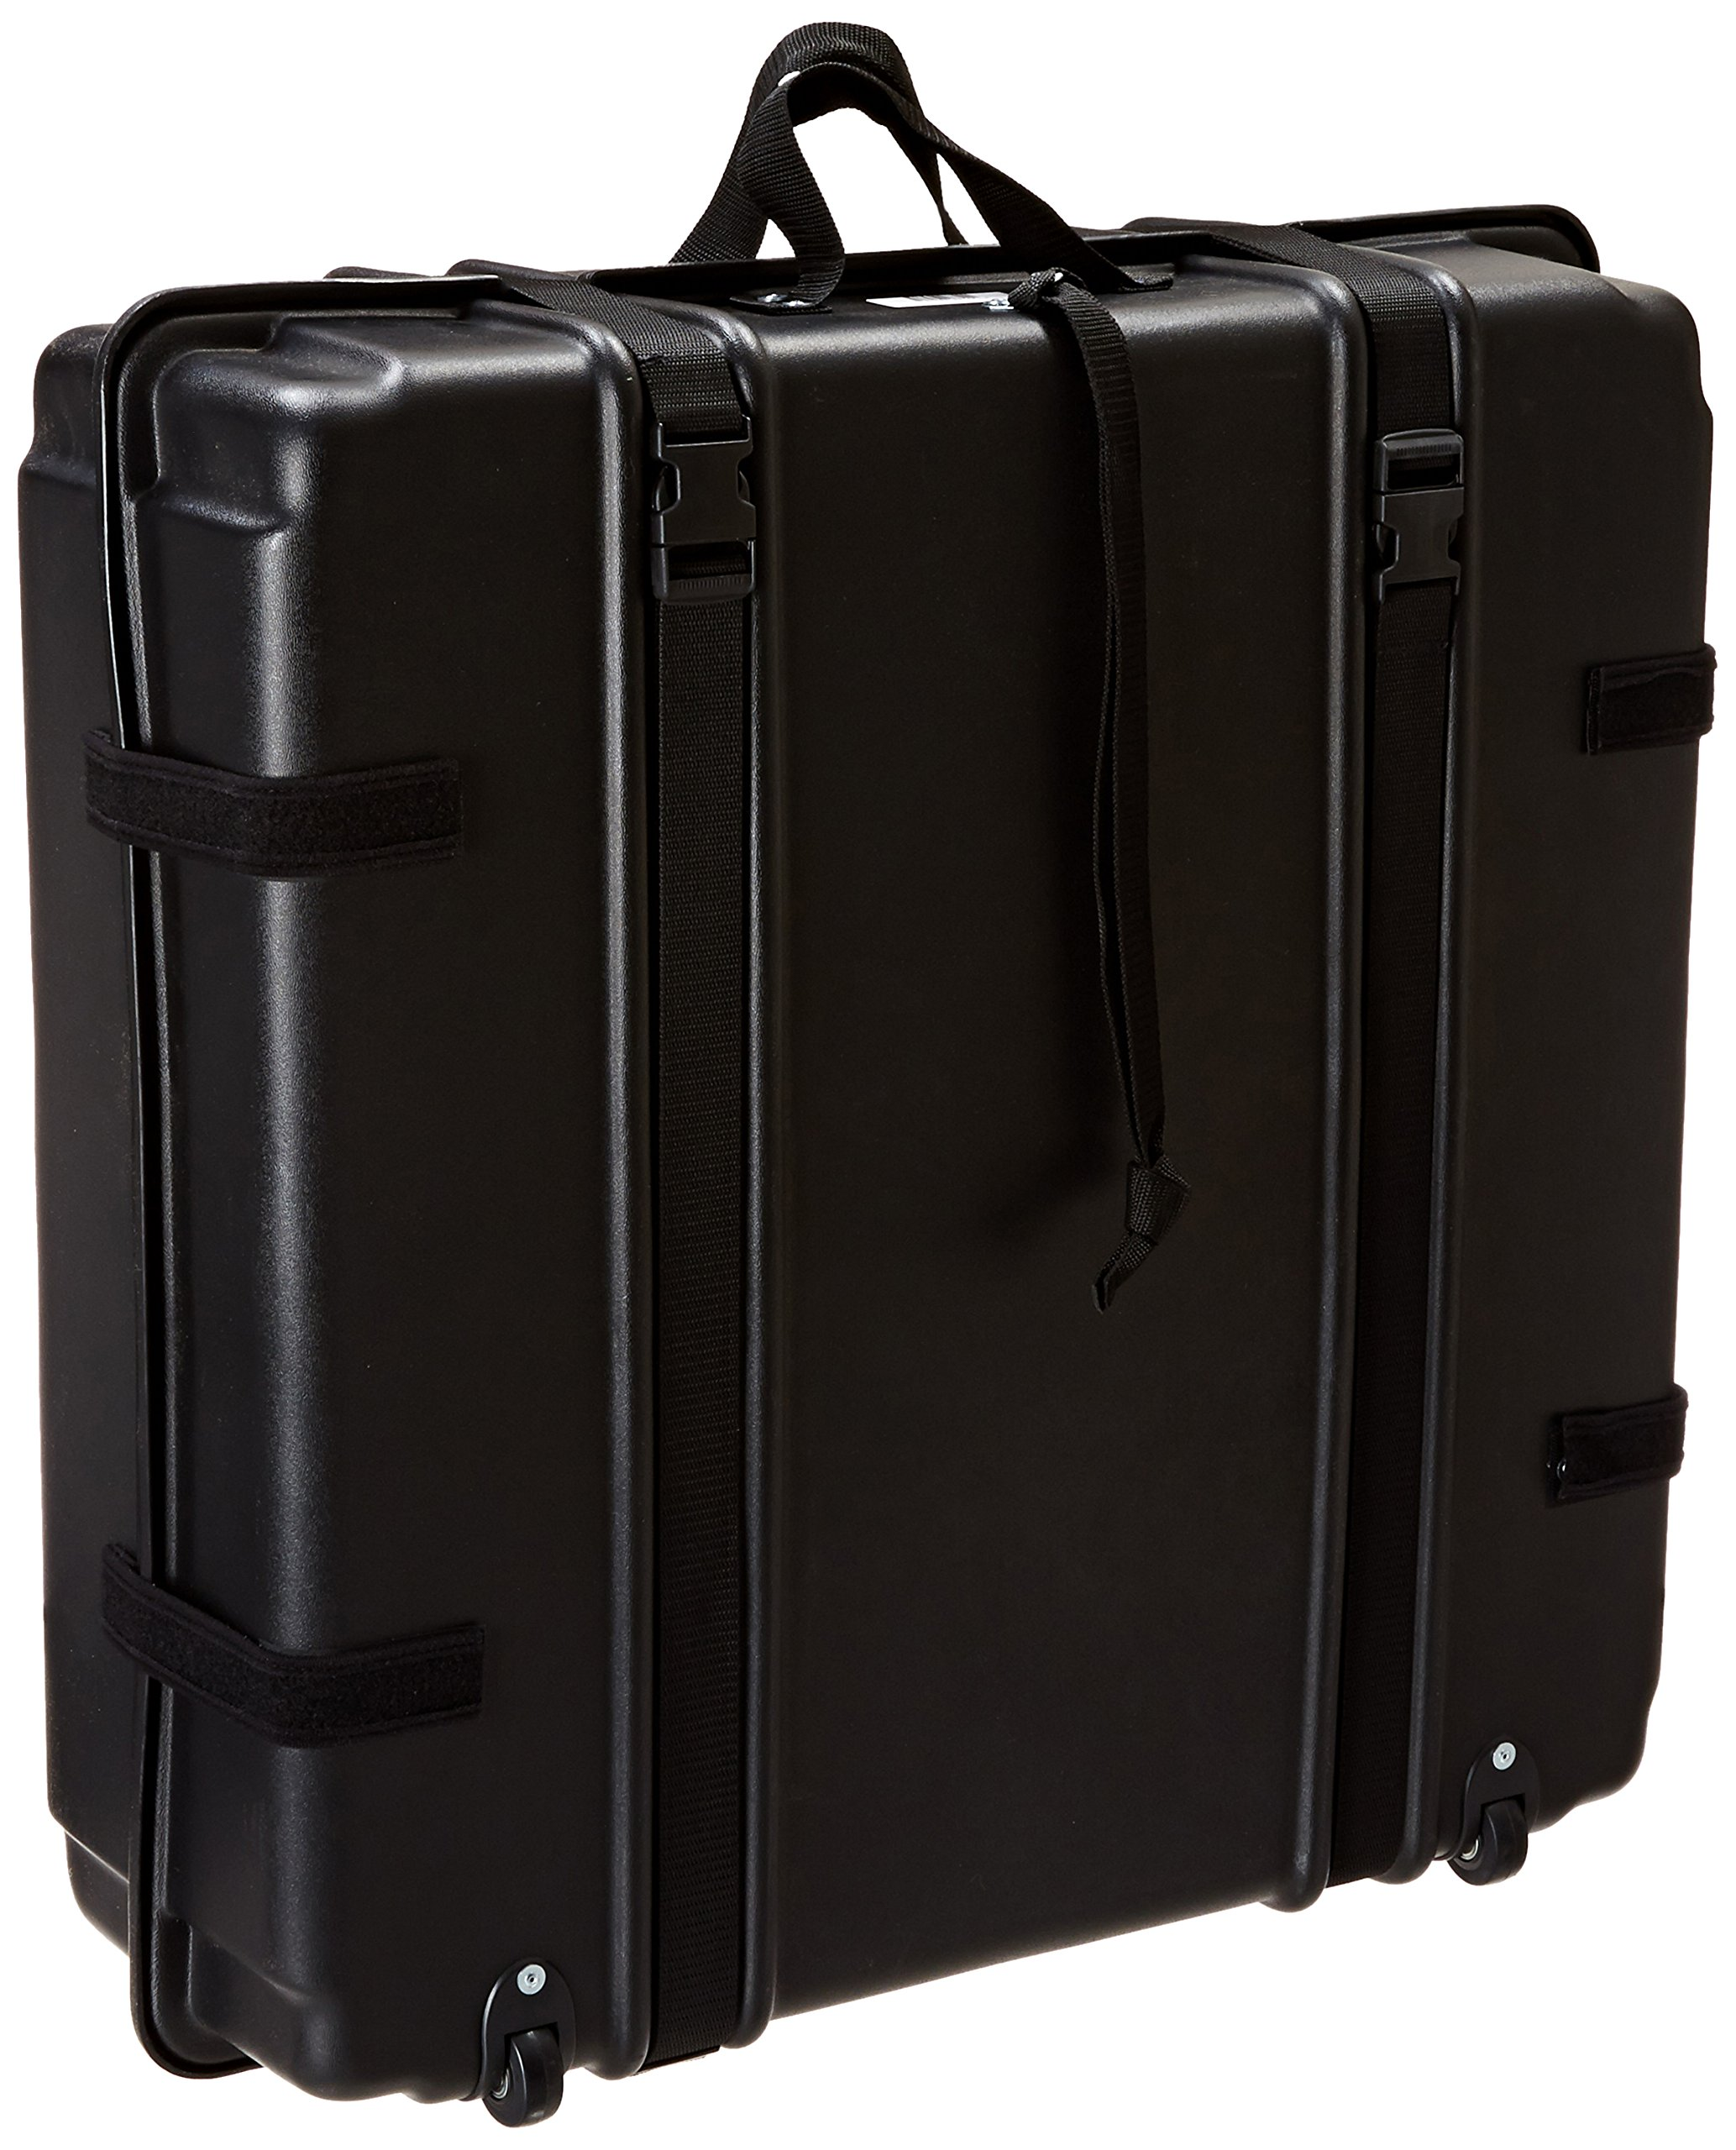 Tri All 3 Sports Clam Shell Wheel Case by Tri All 3 Sports (Image #2)